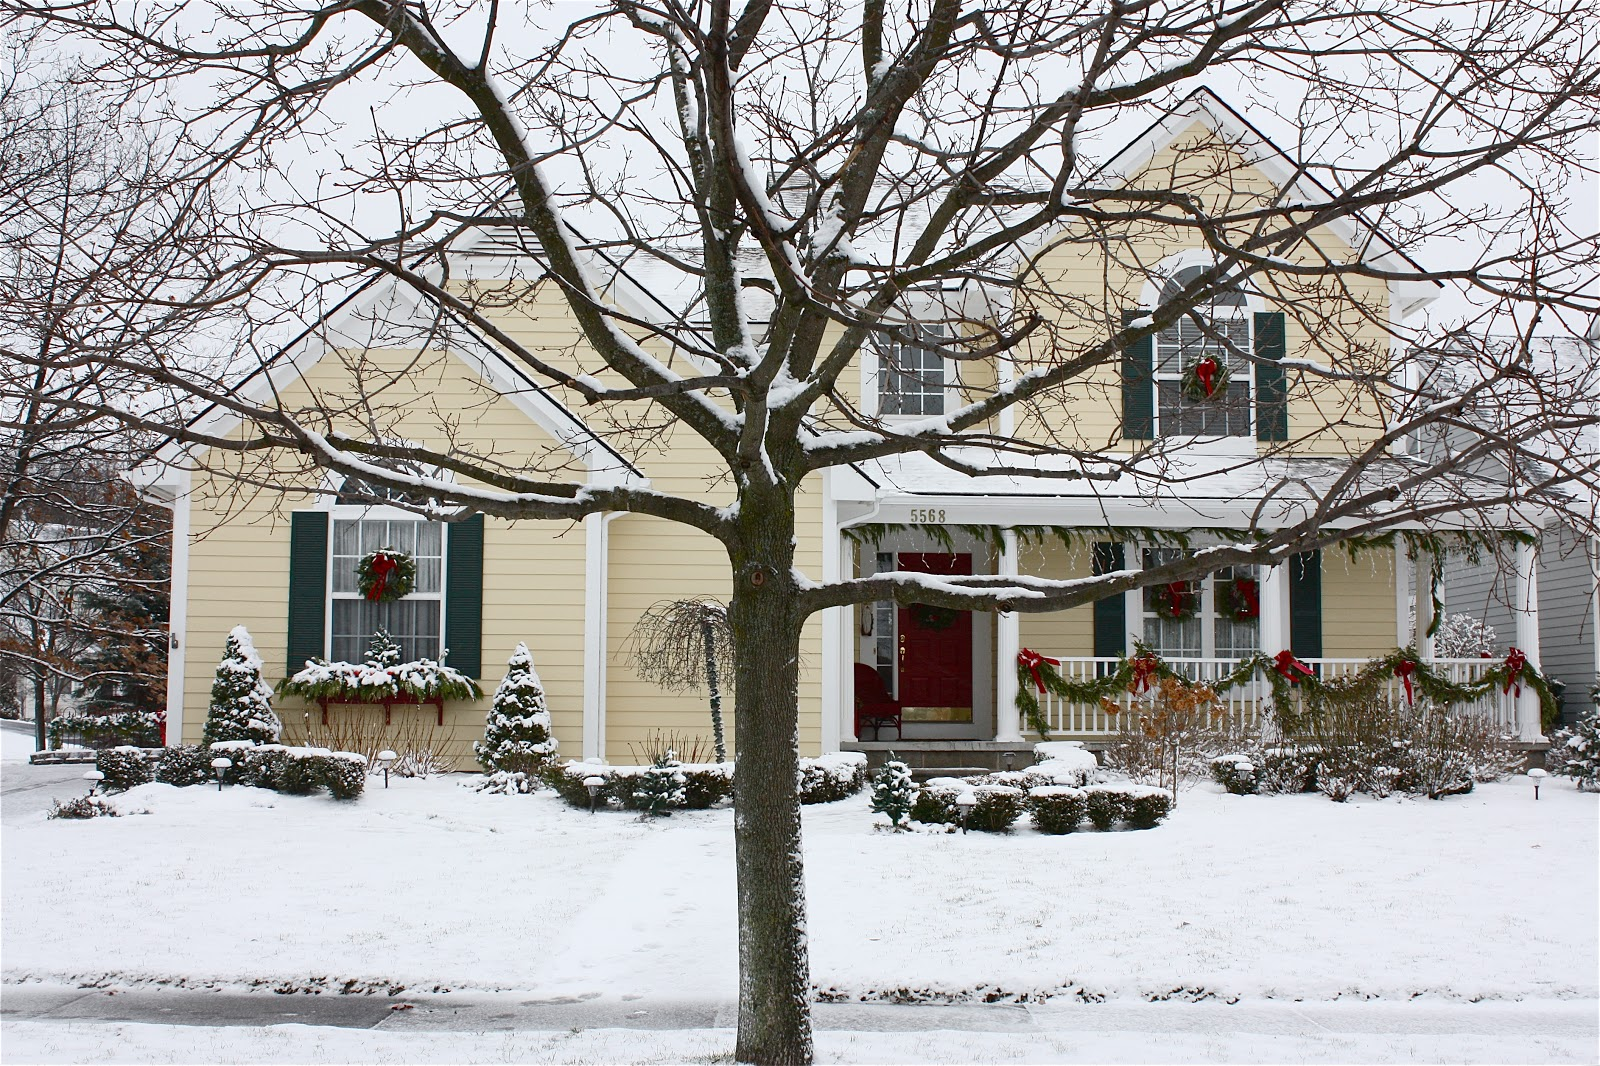 The Yellow Cape Cod: Michigan Christmas Outdoor Home Tour